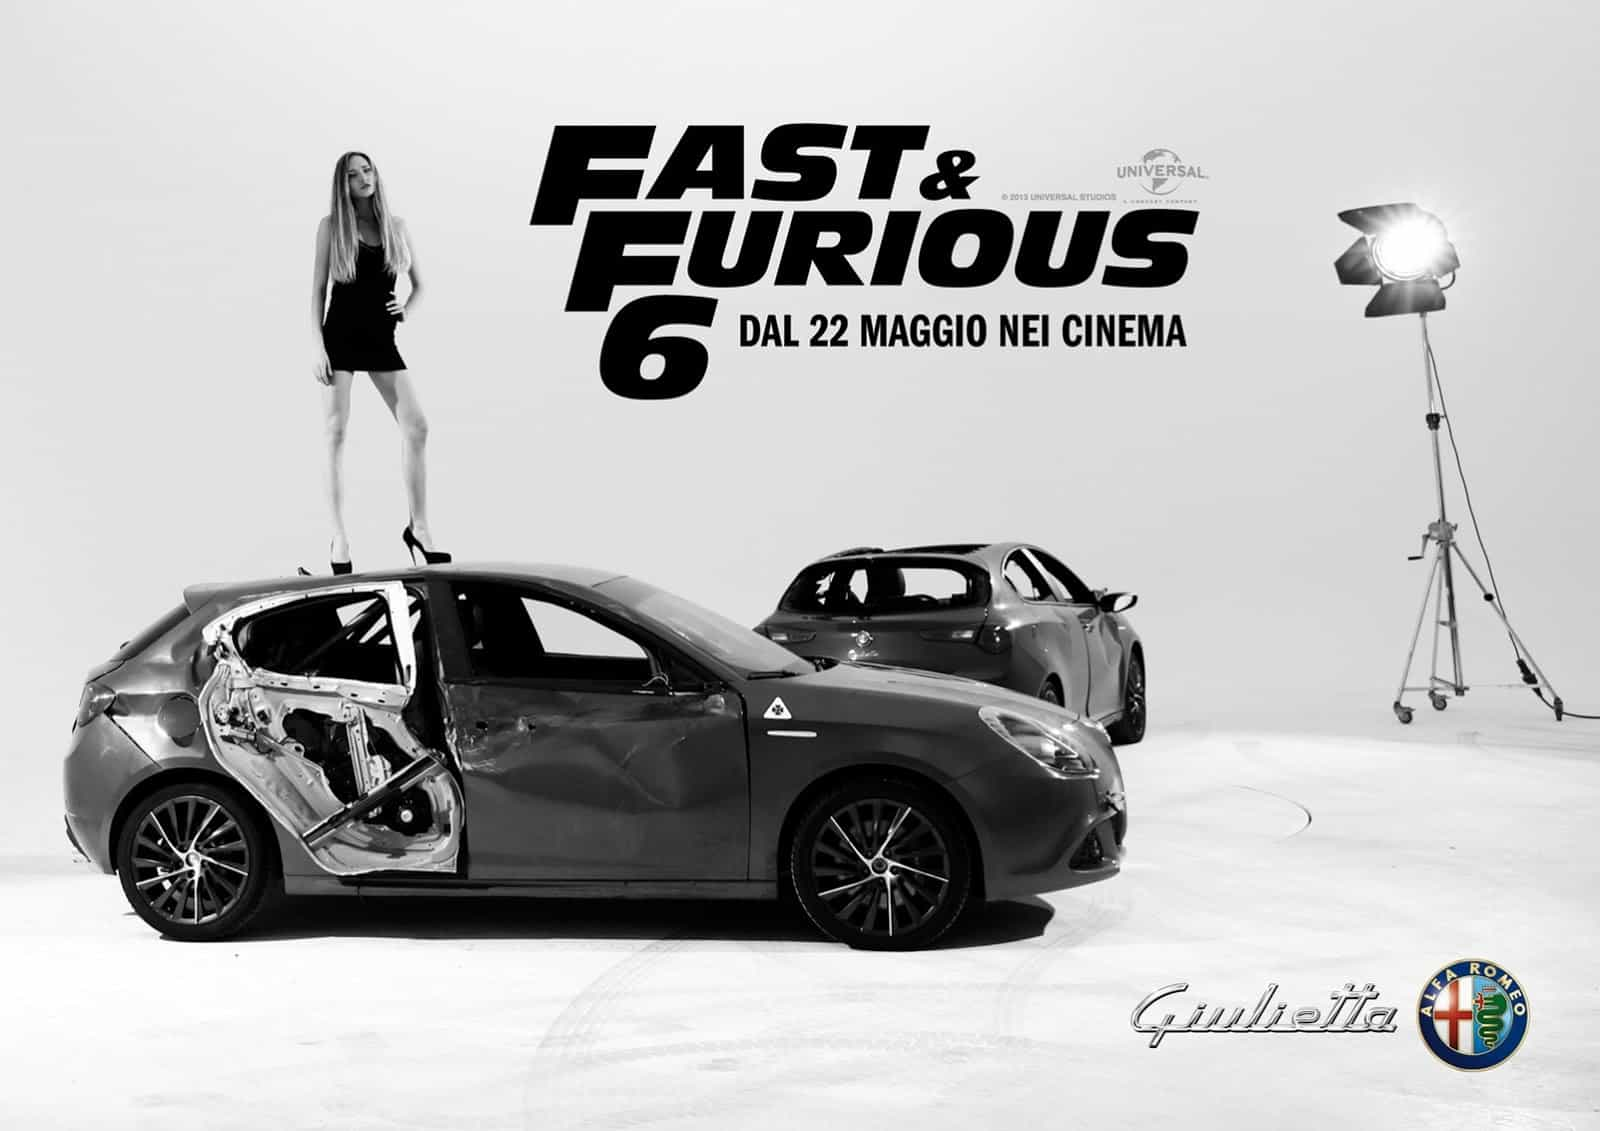 fast and furious 6 une promo pour l 39 alfa romeo giulietta au passage. Black Bedroom Furniture Sets. Home Design Ideas